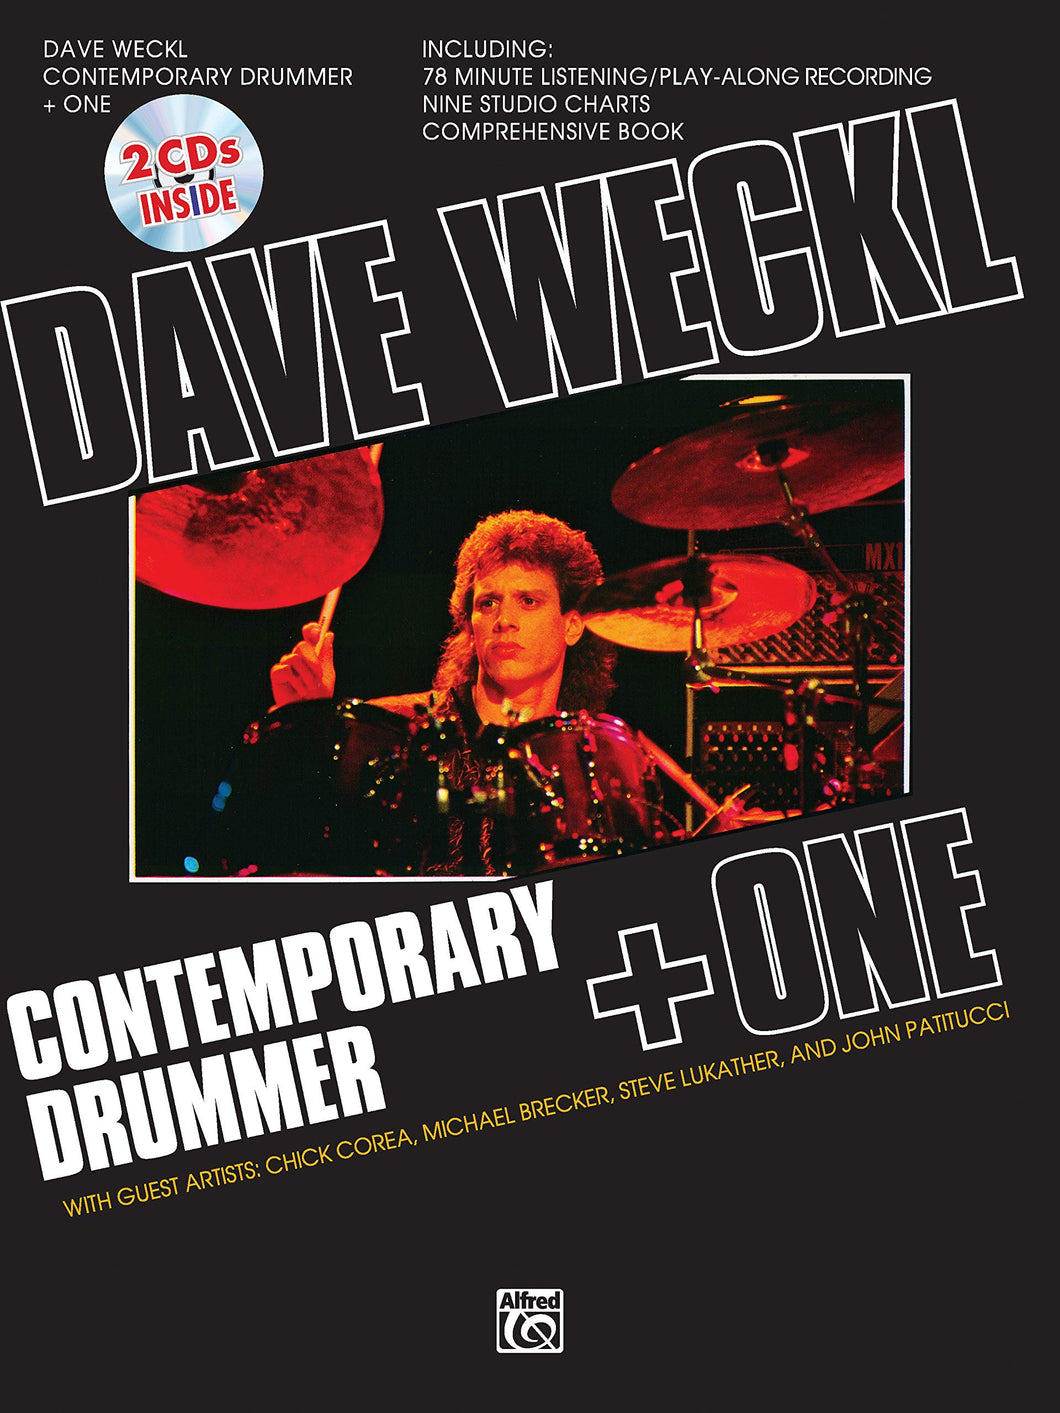 Garden Wall - Dave Weckl - Collection of Drum Transcriptions / Drum Sheet Music - Alfred Music DWCDO